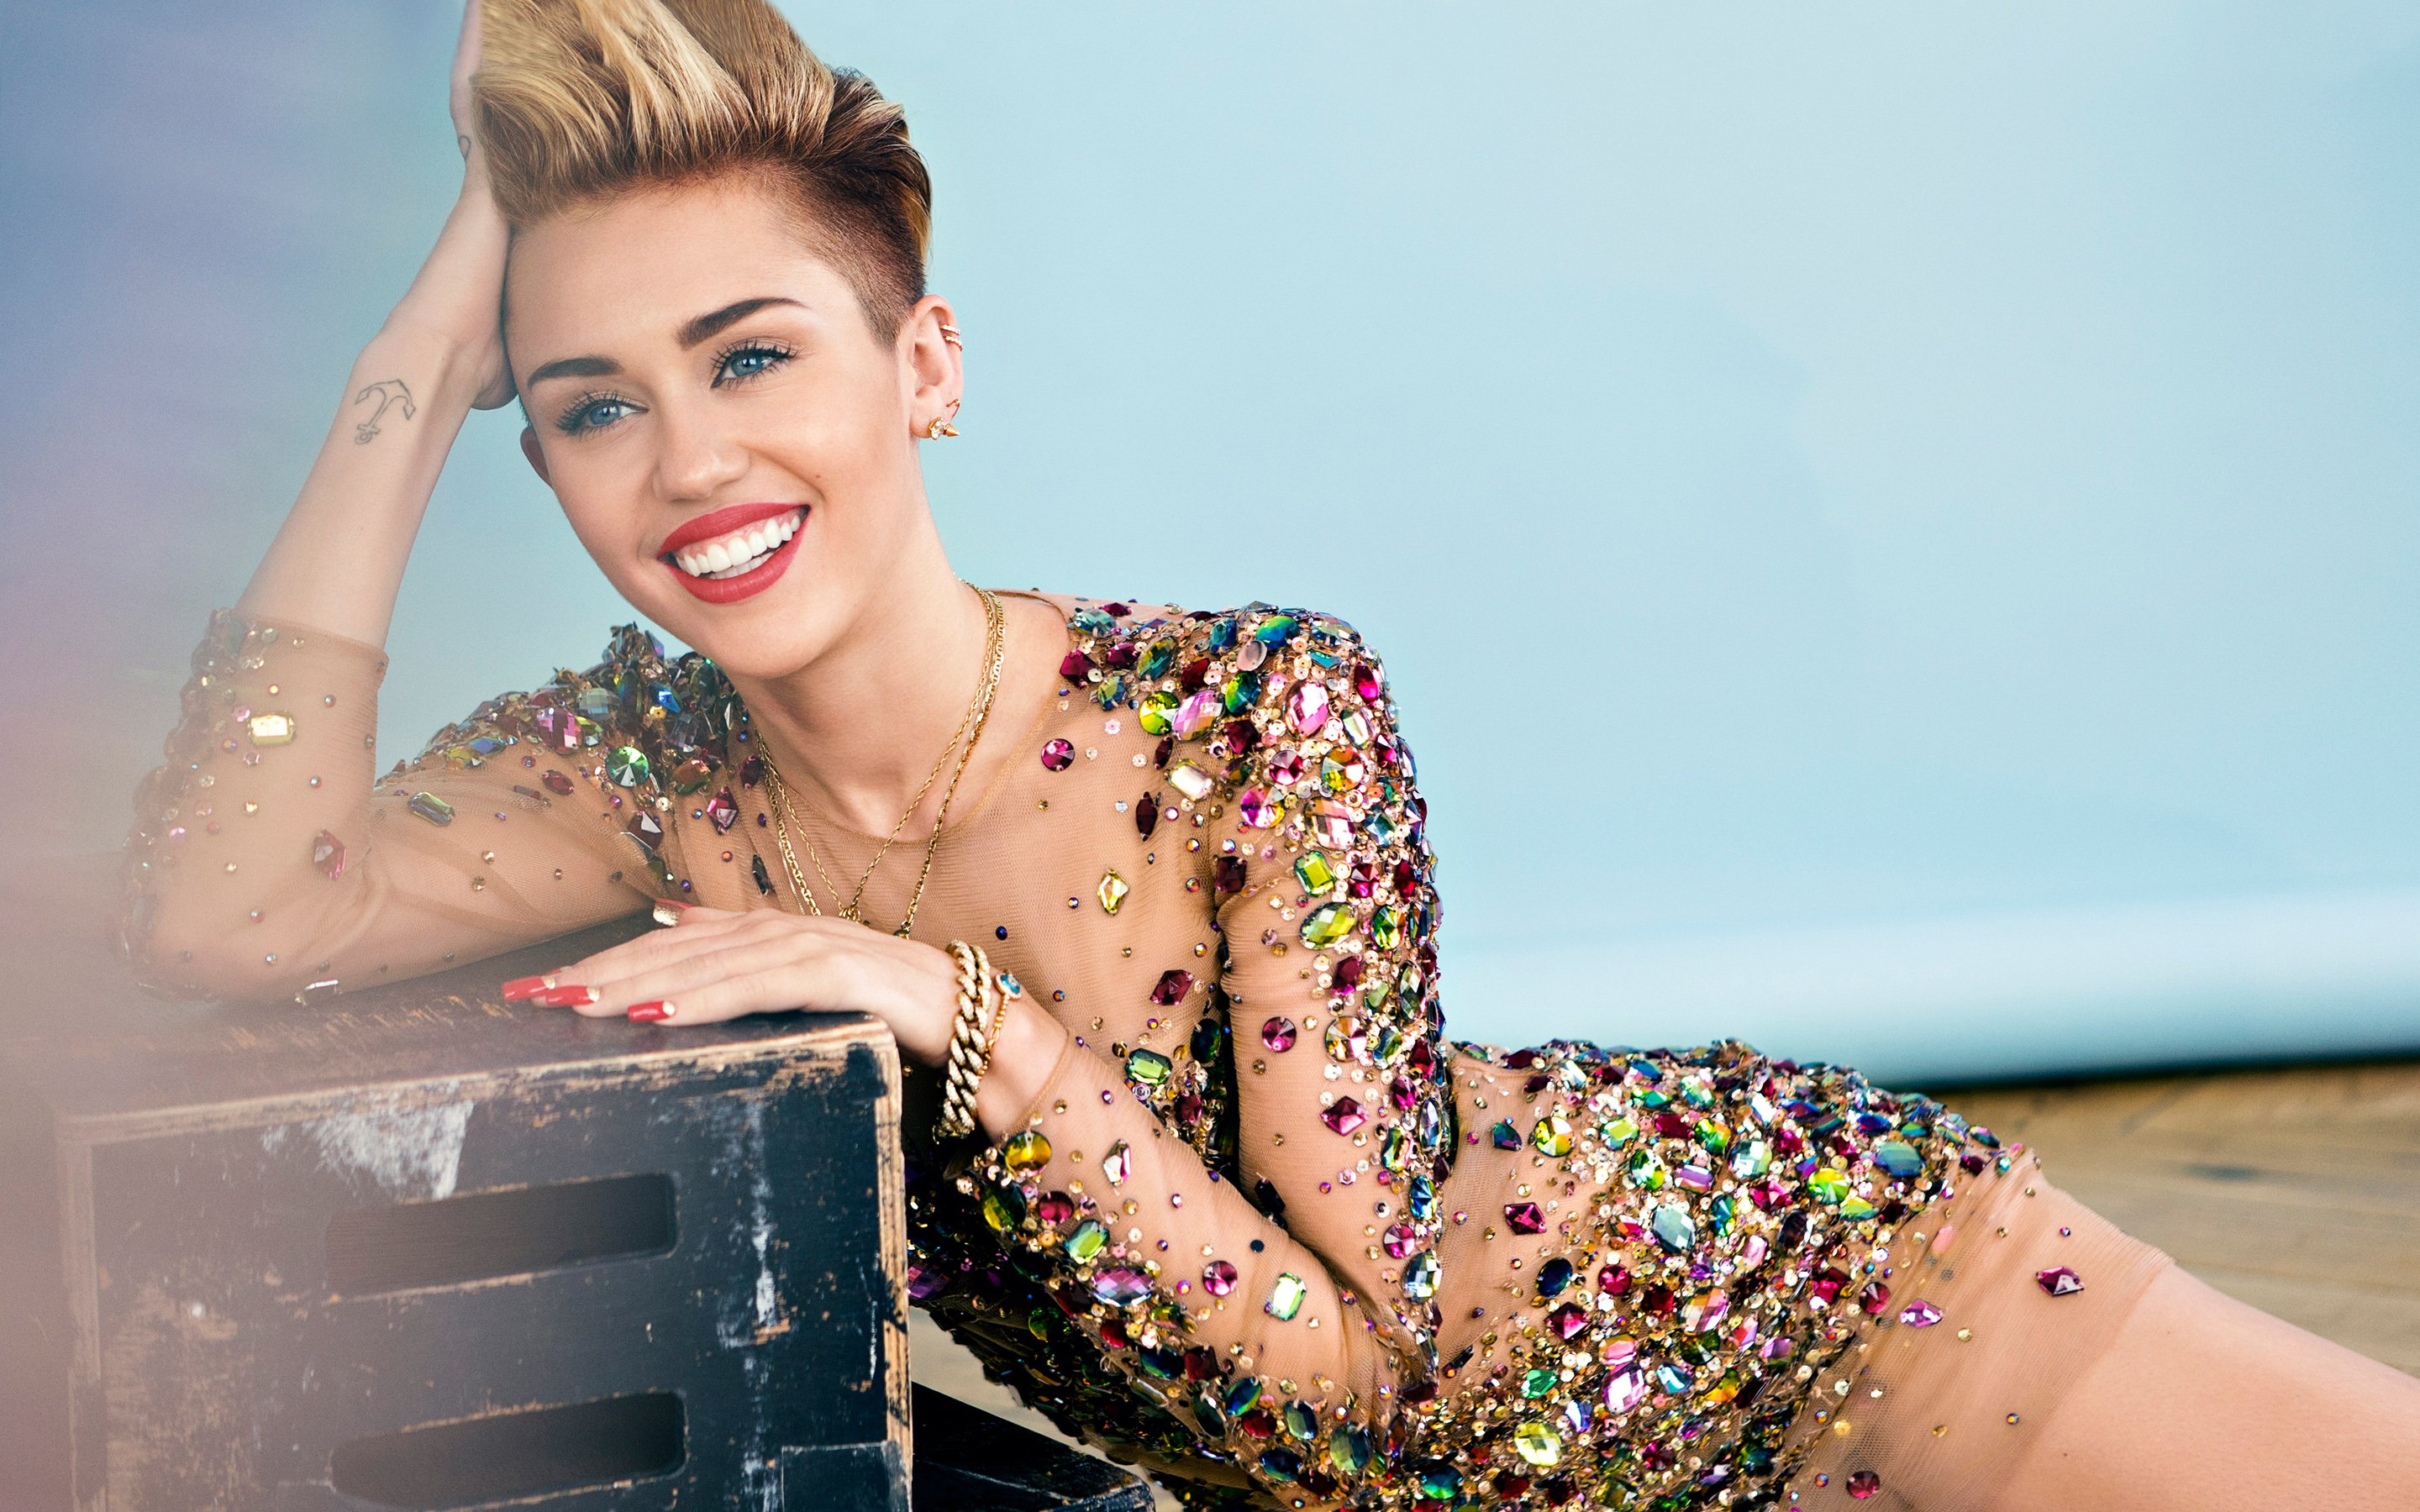 Miley Cyrus 2014 Wallpapers HD Wallpapers 2880x1800